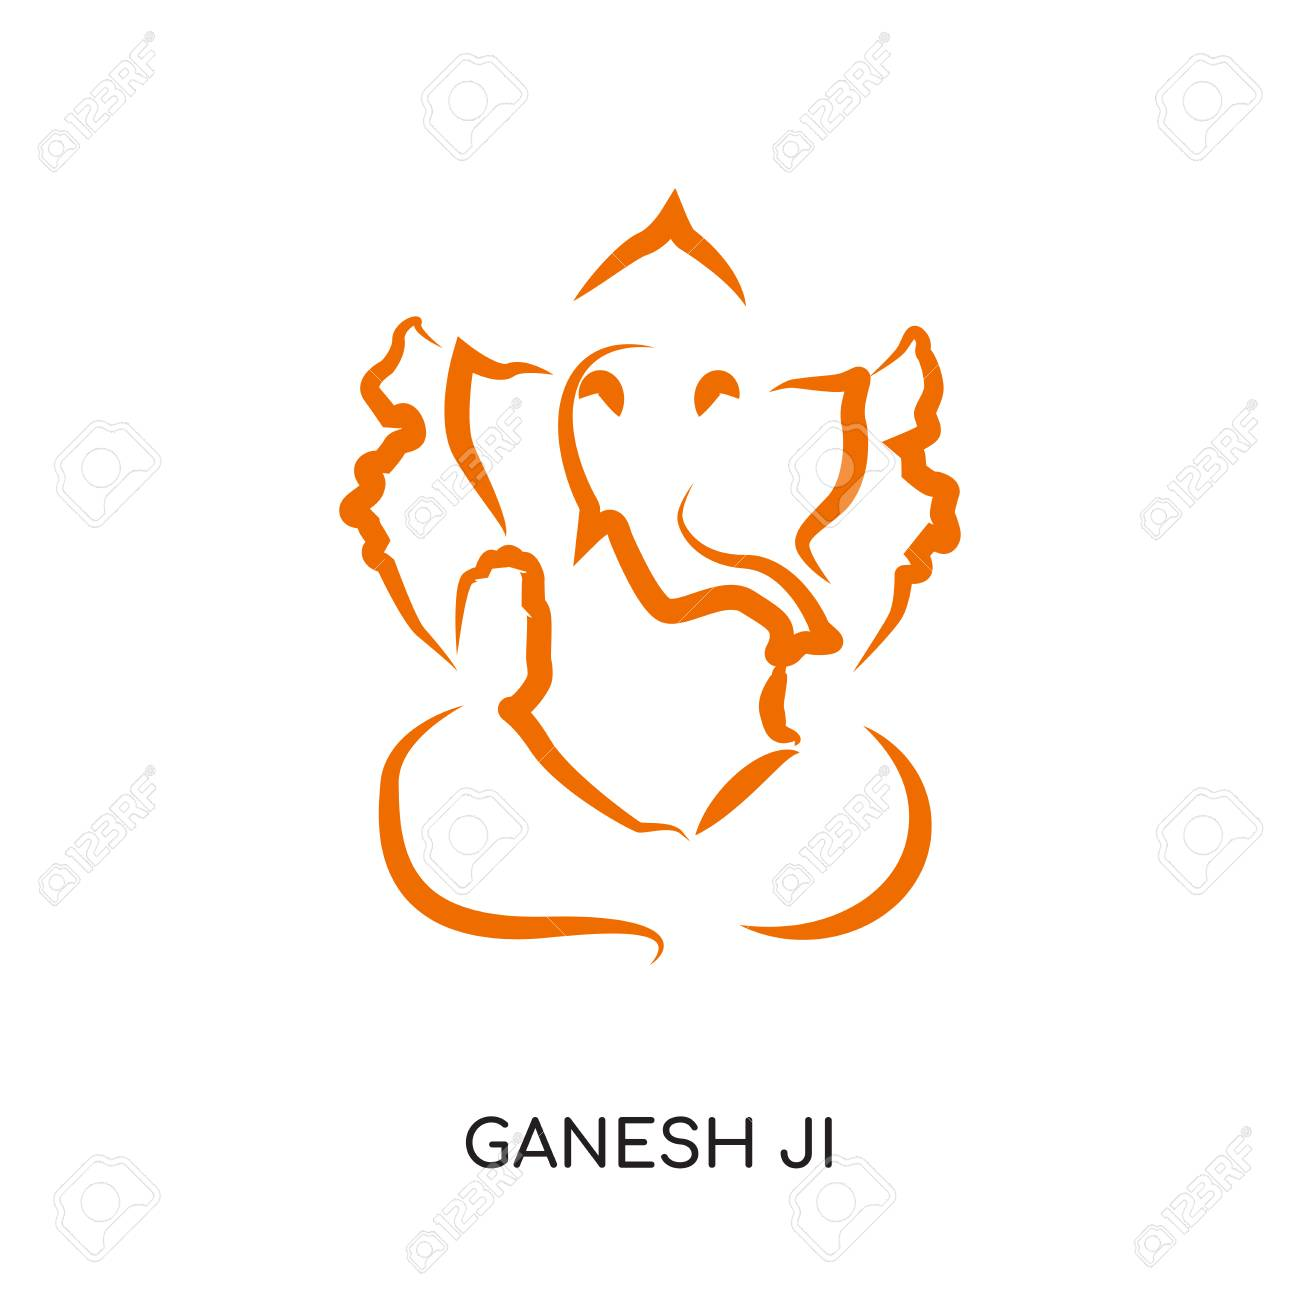 Ganesh Ji Logo Isolated On White Background For Your Web And Royalty Free Cliparts Vectors And Stock Illustration Image 101120399